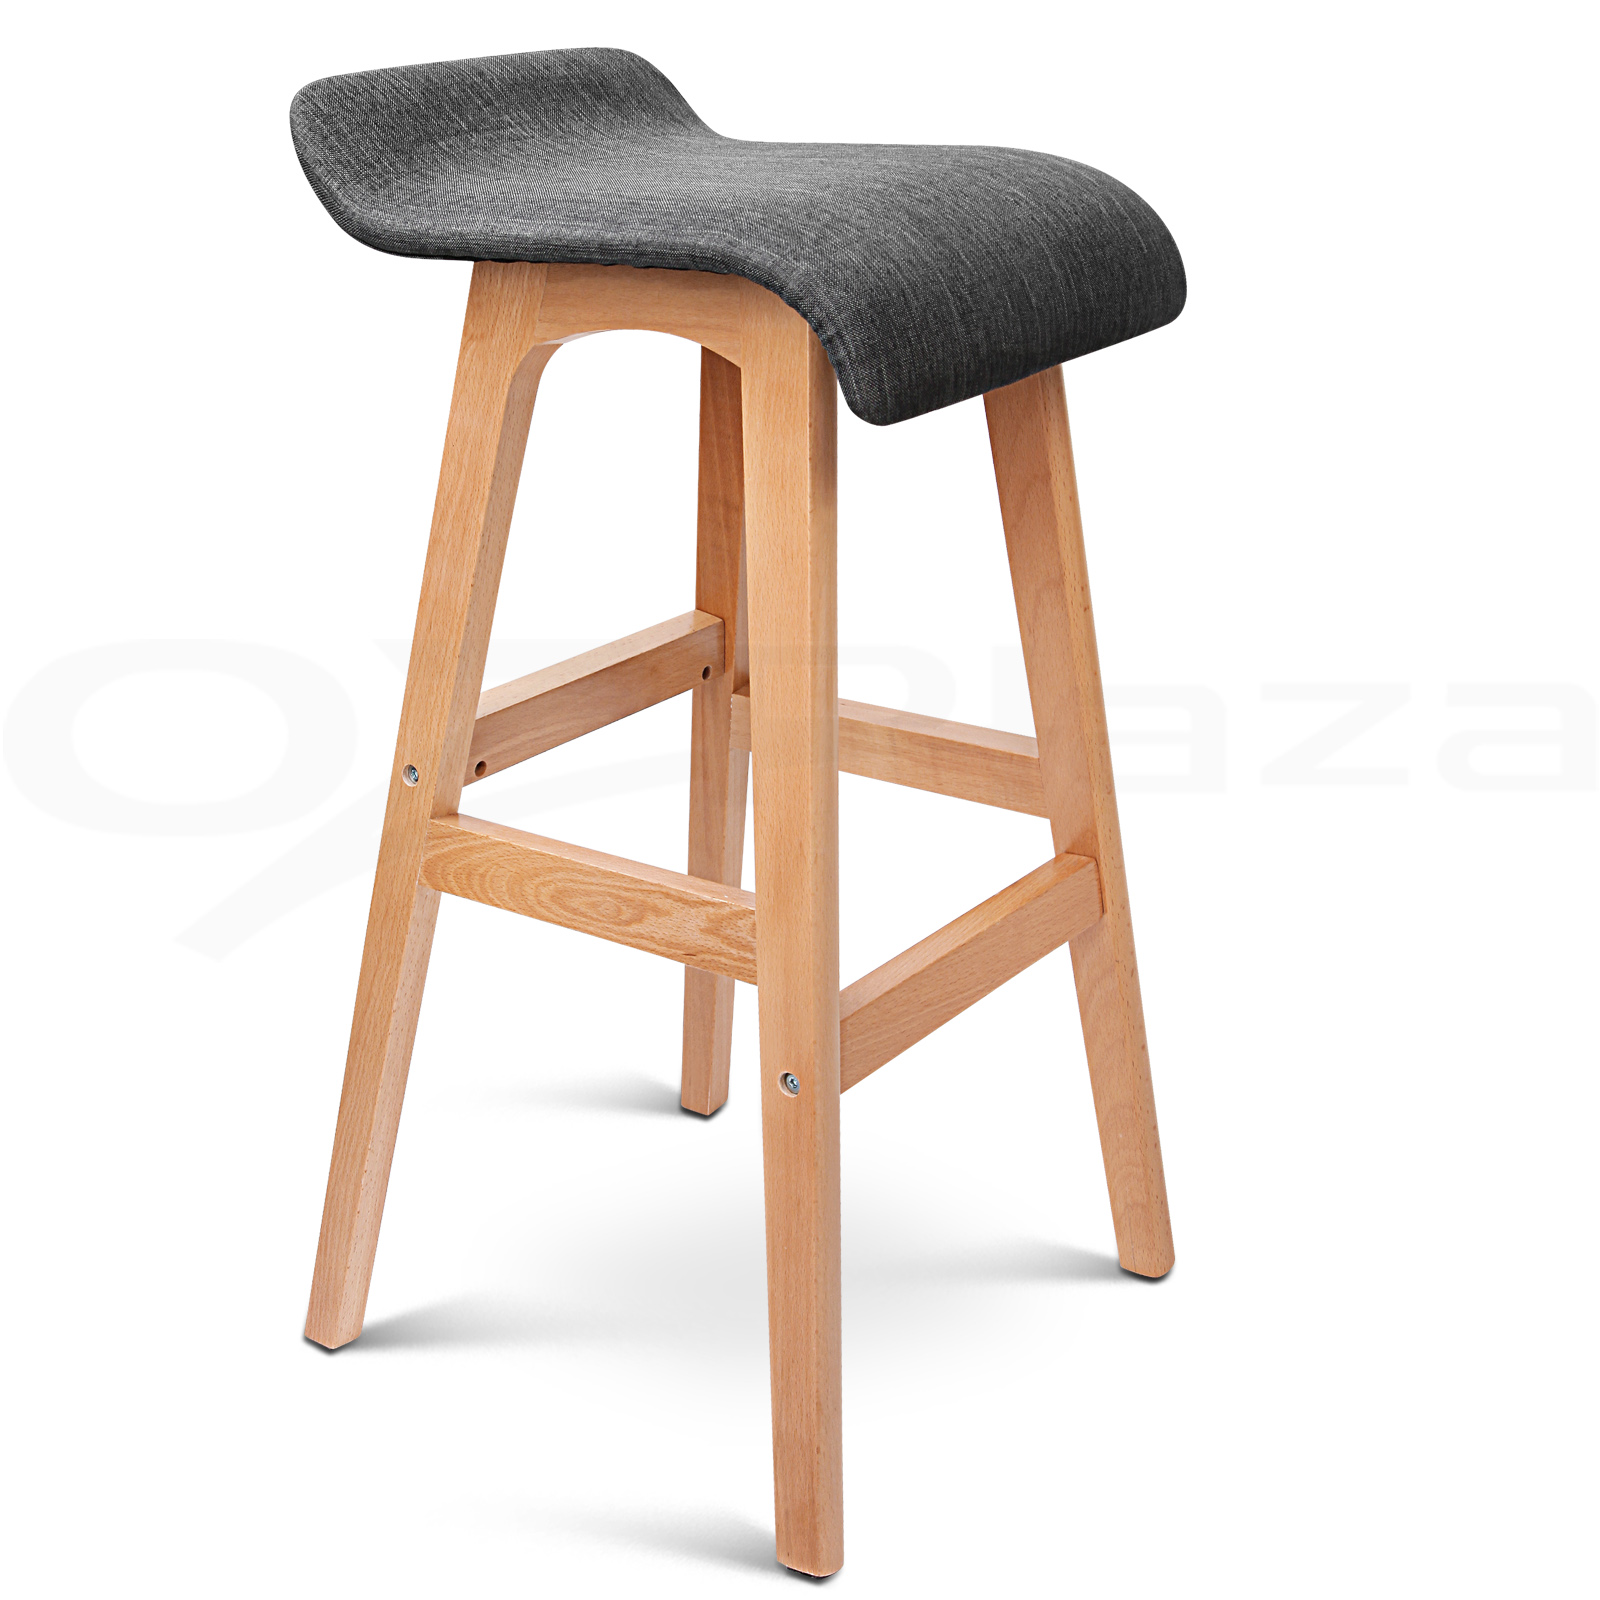 wooden kitchen stools sink oakley 4x bar barstool fabric foam seat